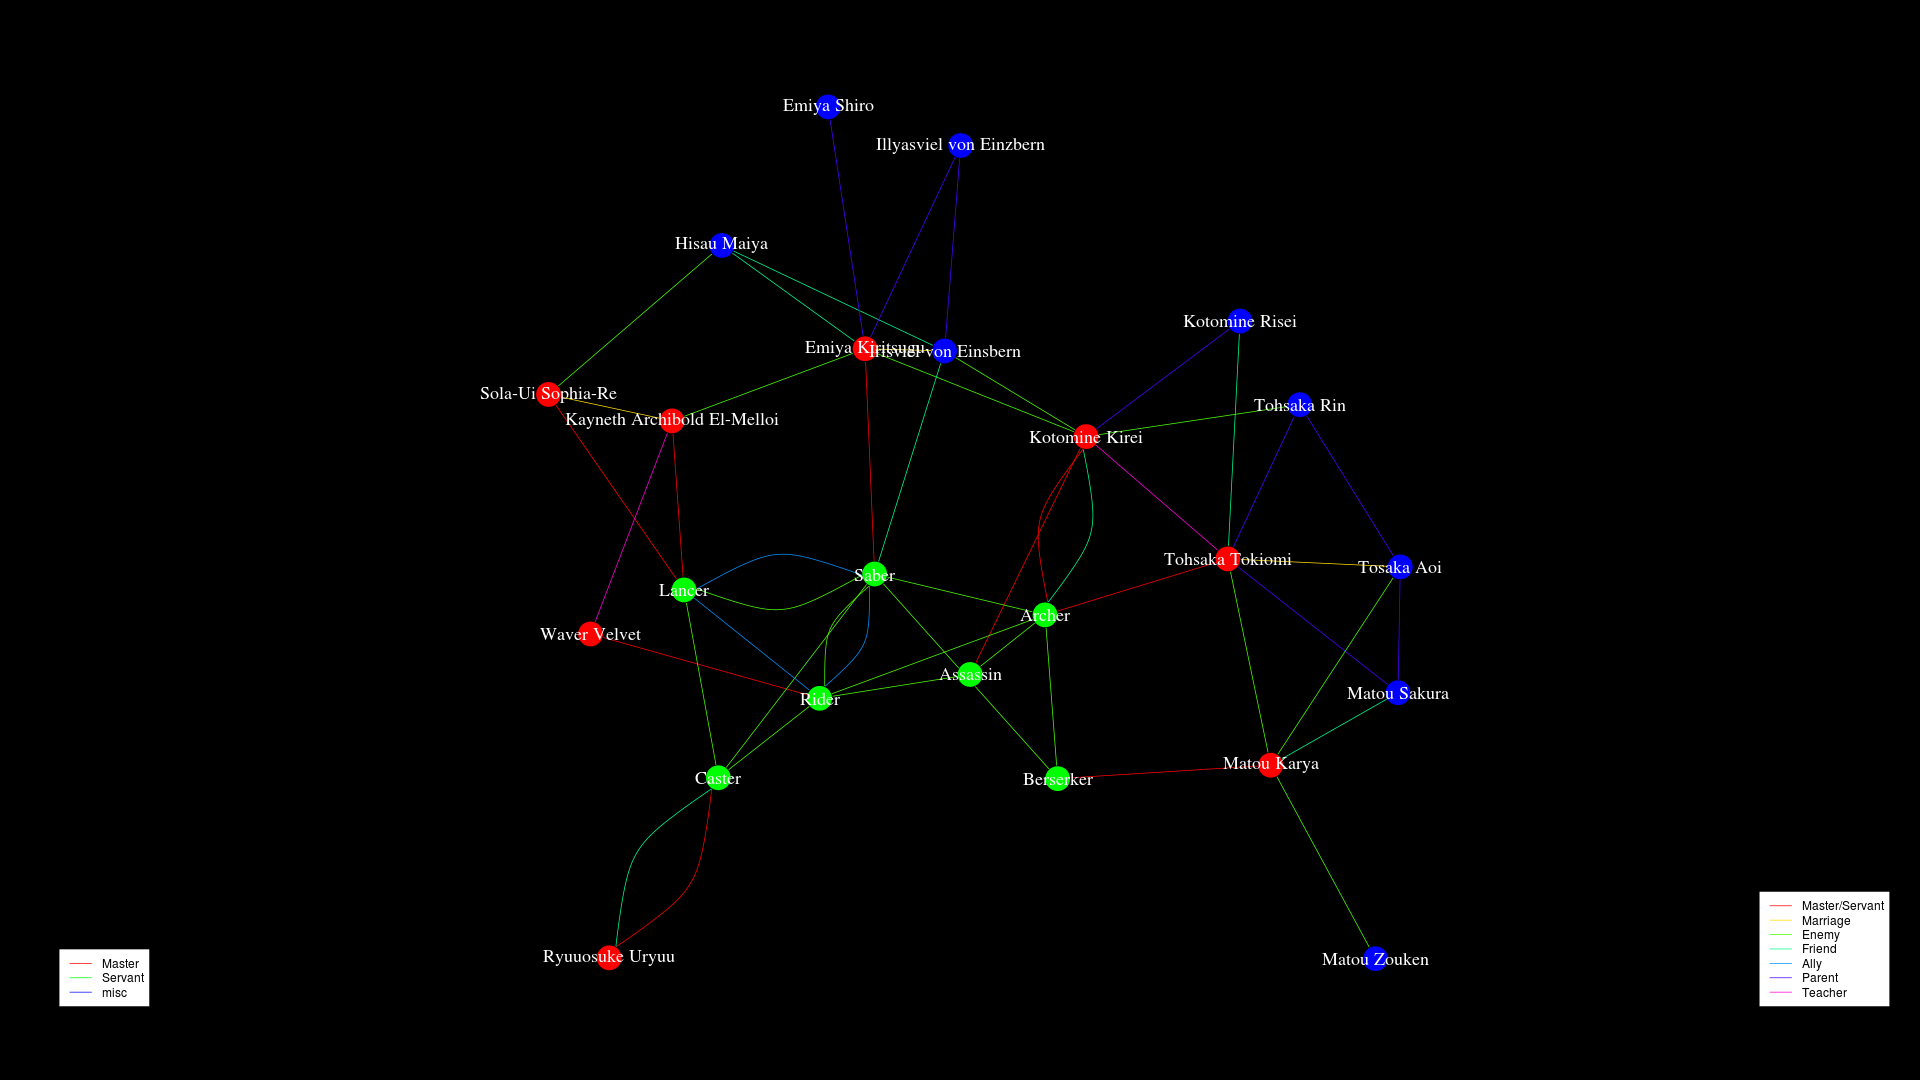 Network graph of the relationships between Fate/Zero characters